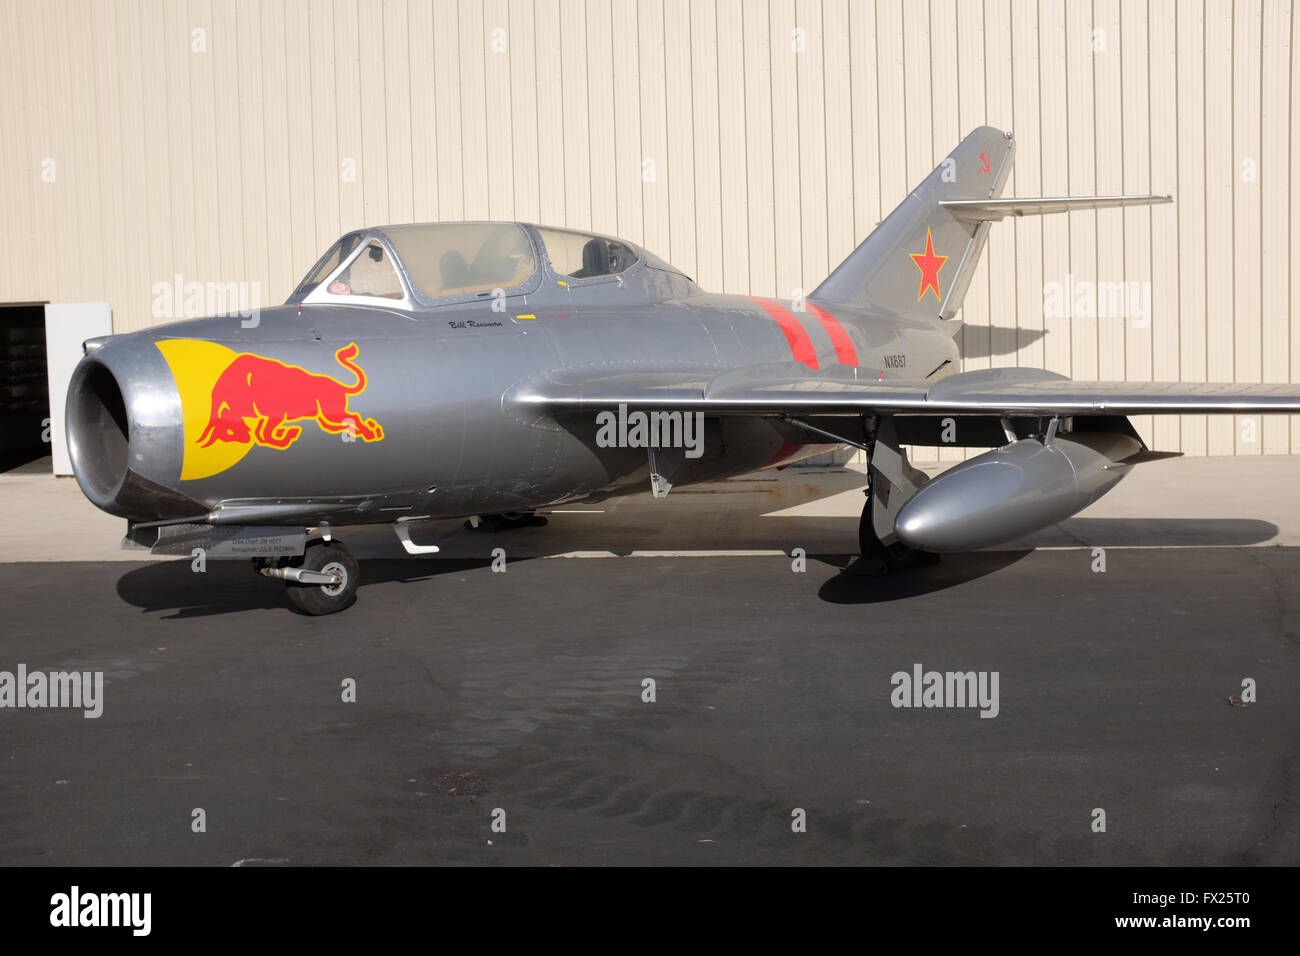 Red Bull Jet Plane at Planes of Fame Museum in Chino, California - Stock Image